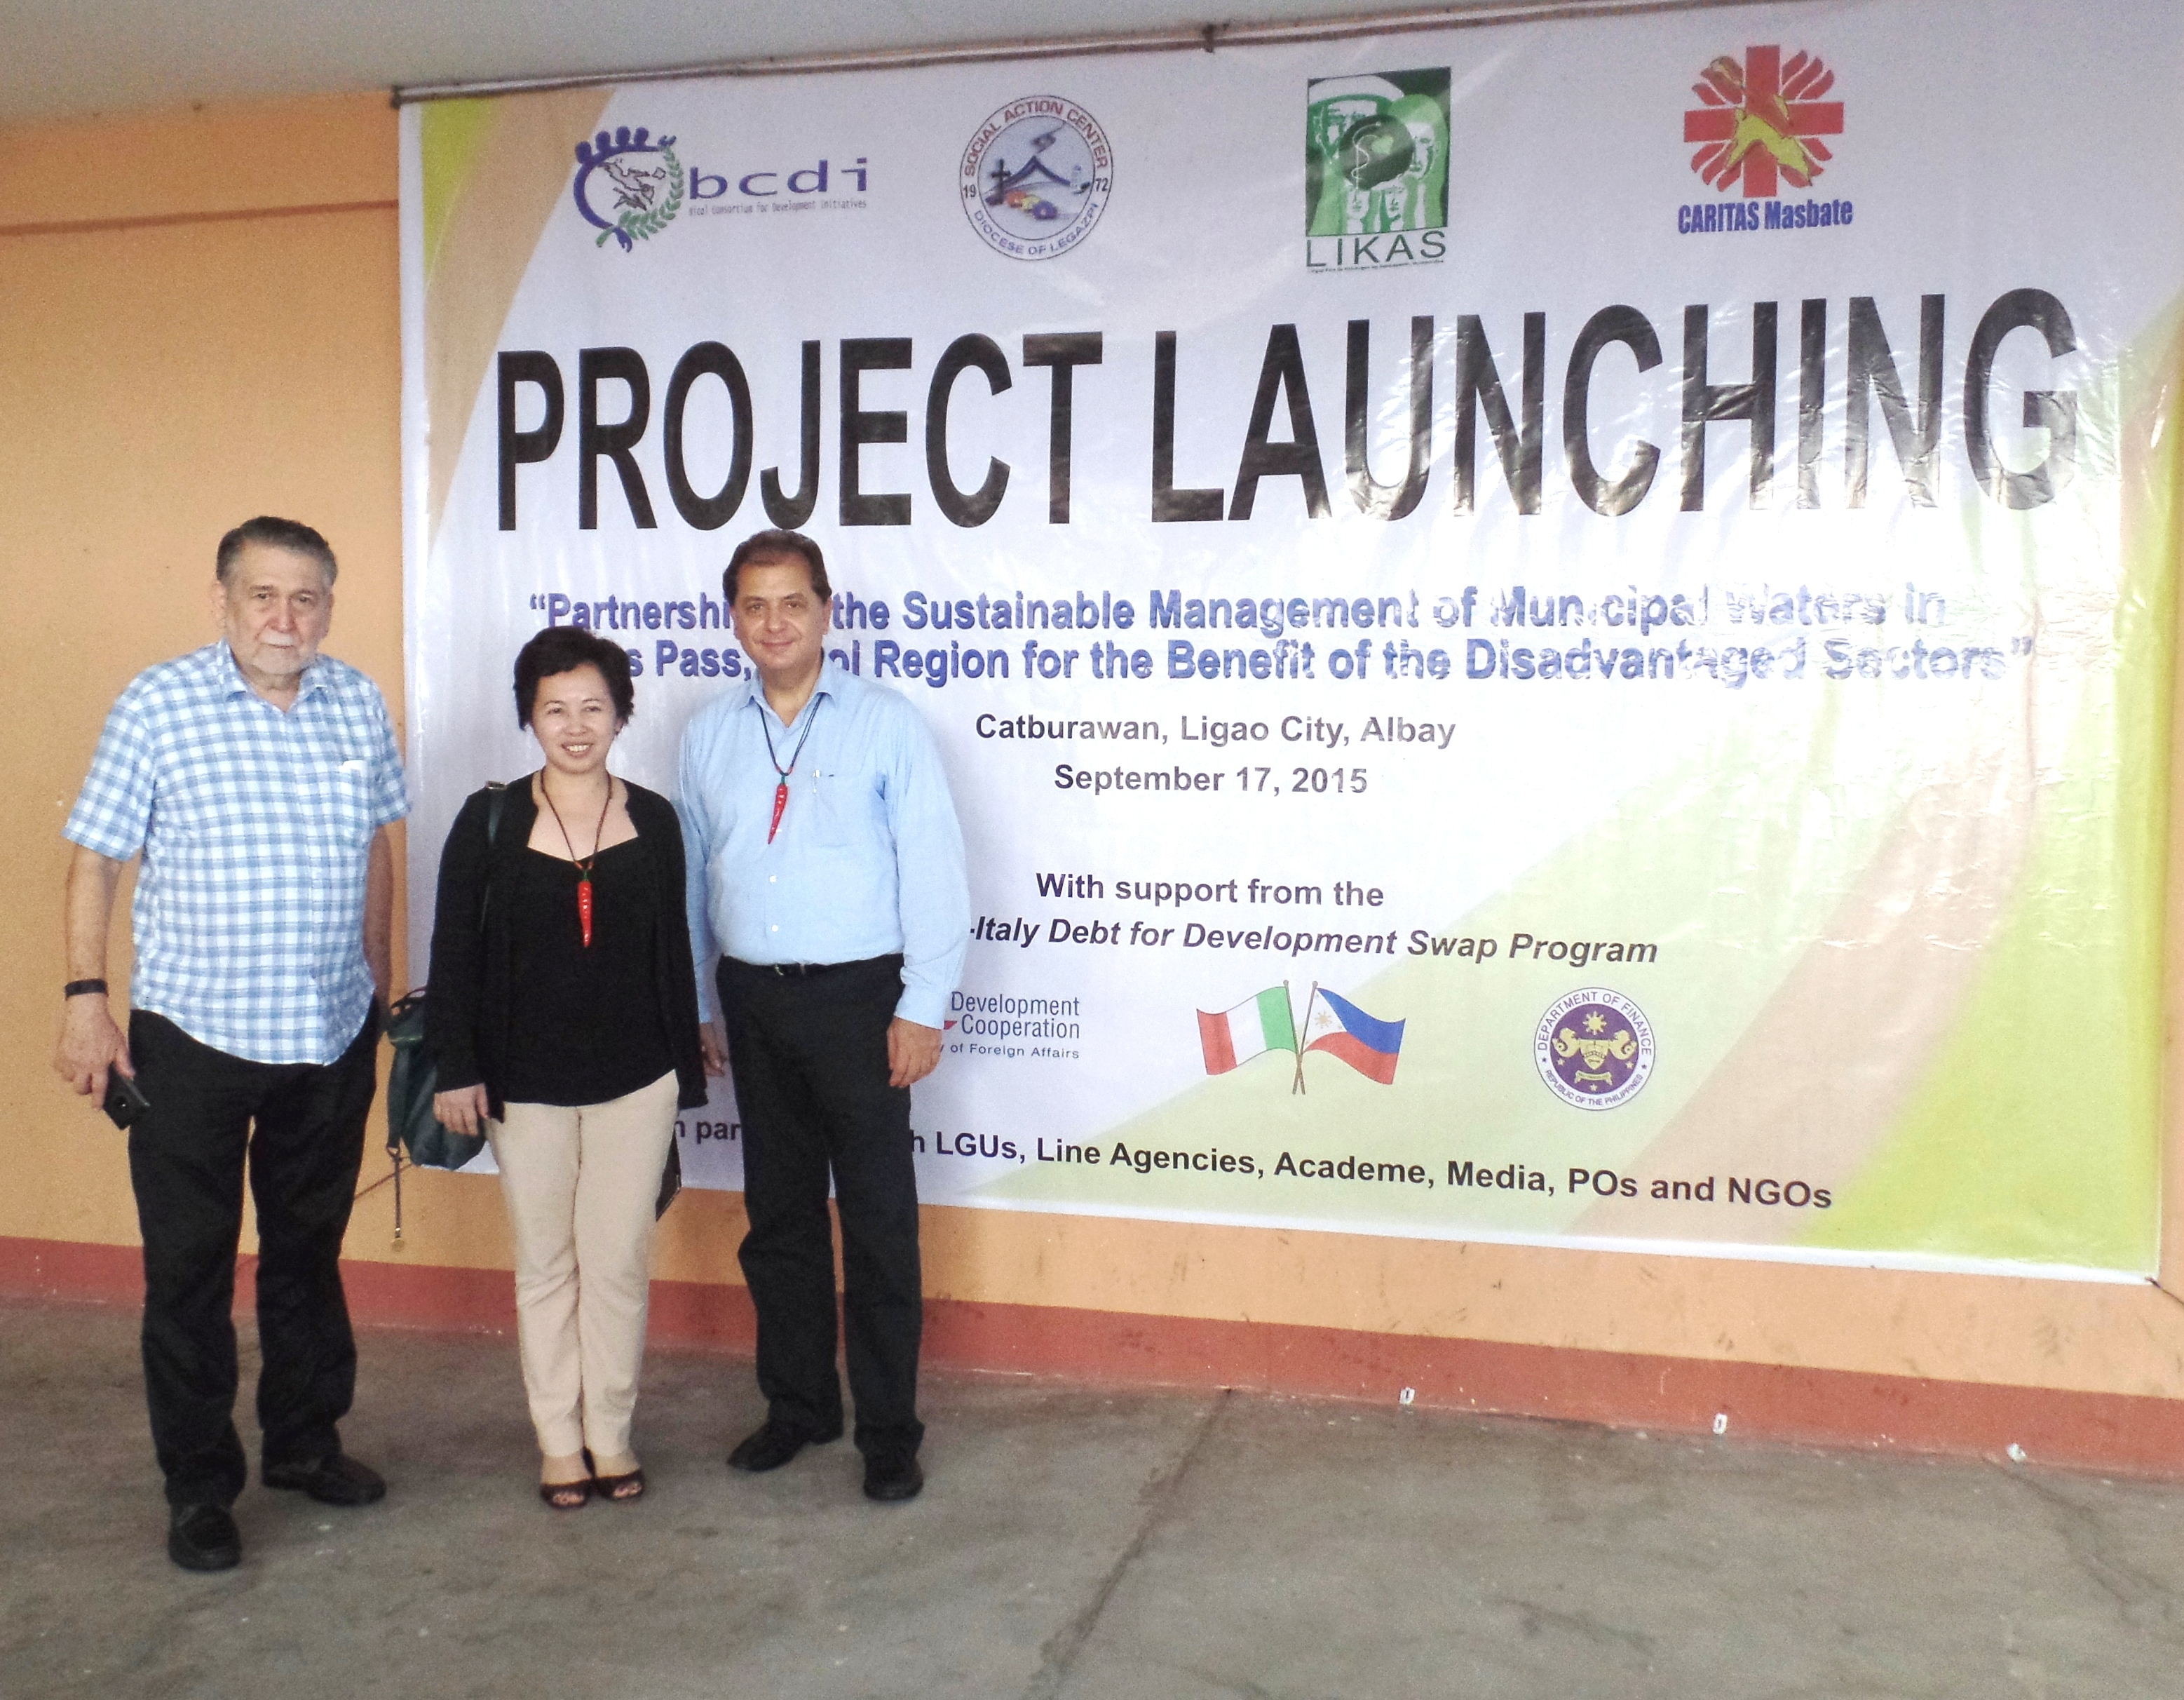 20150917-Project-Launching-in-Ligao-City-Albay2-300x225